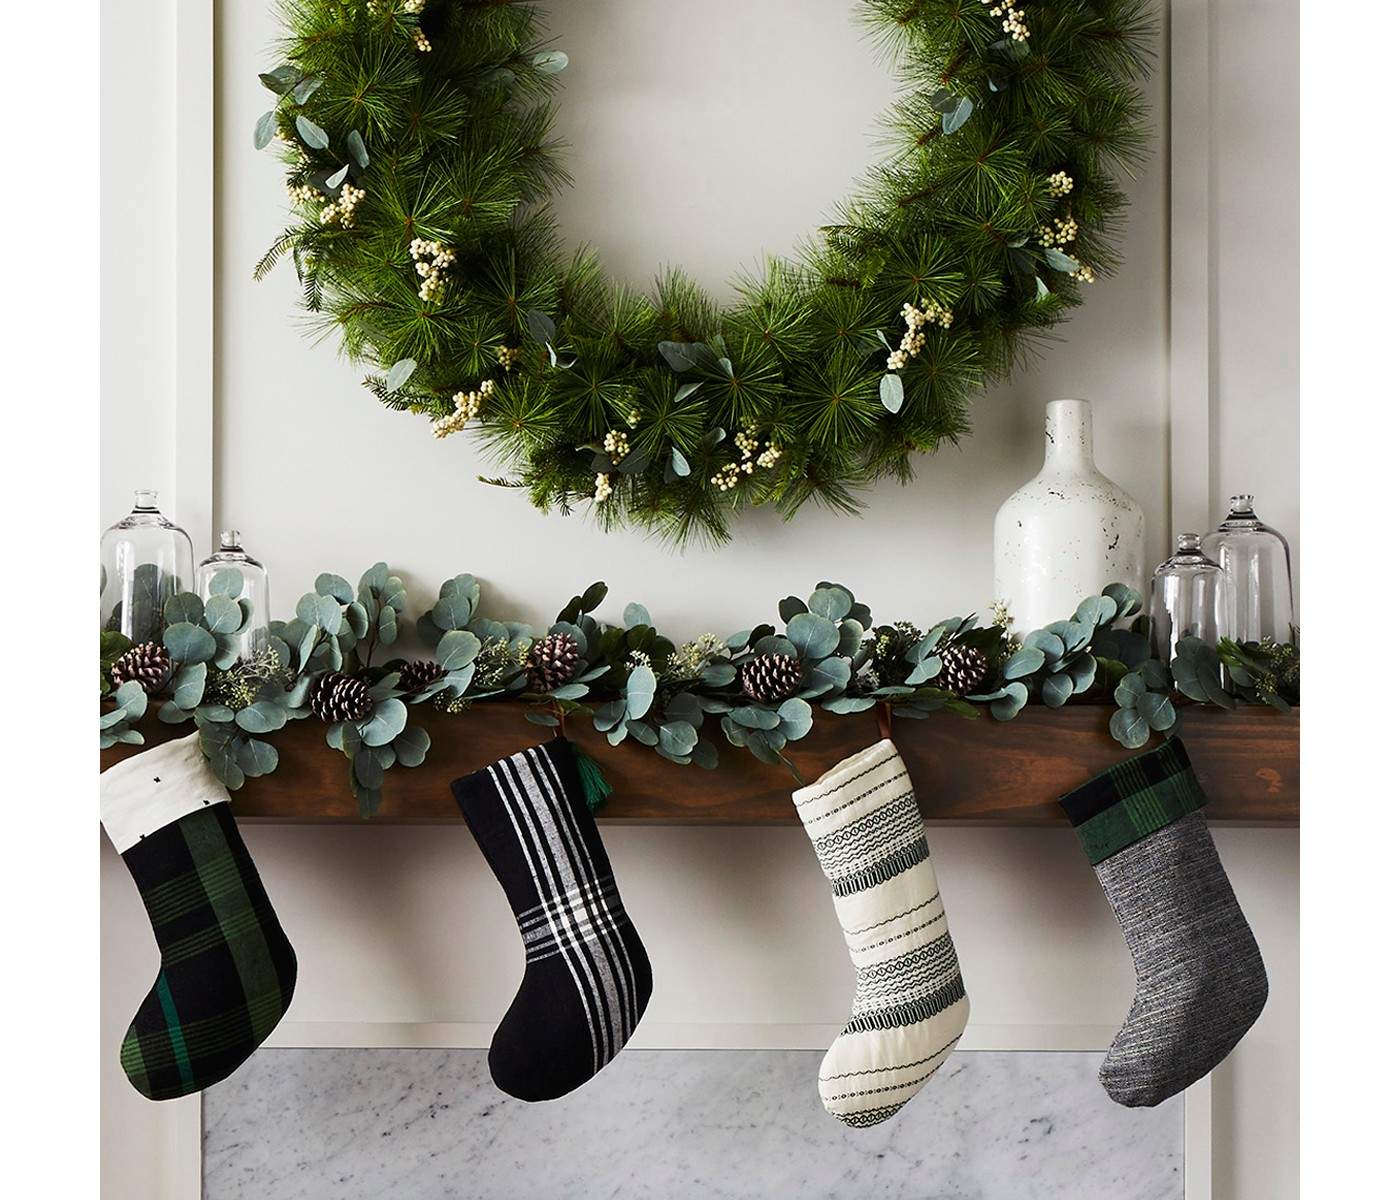 White, Black, and Green Stockings hung on mantel